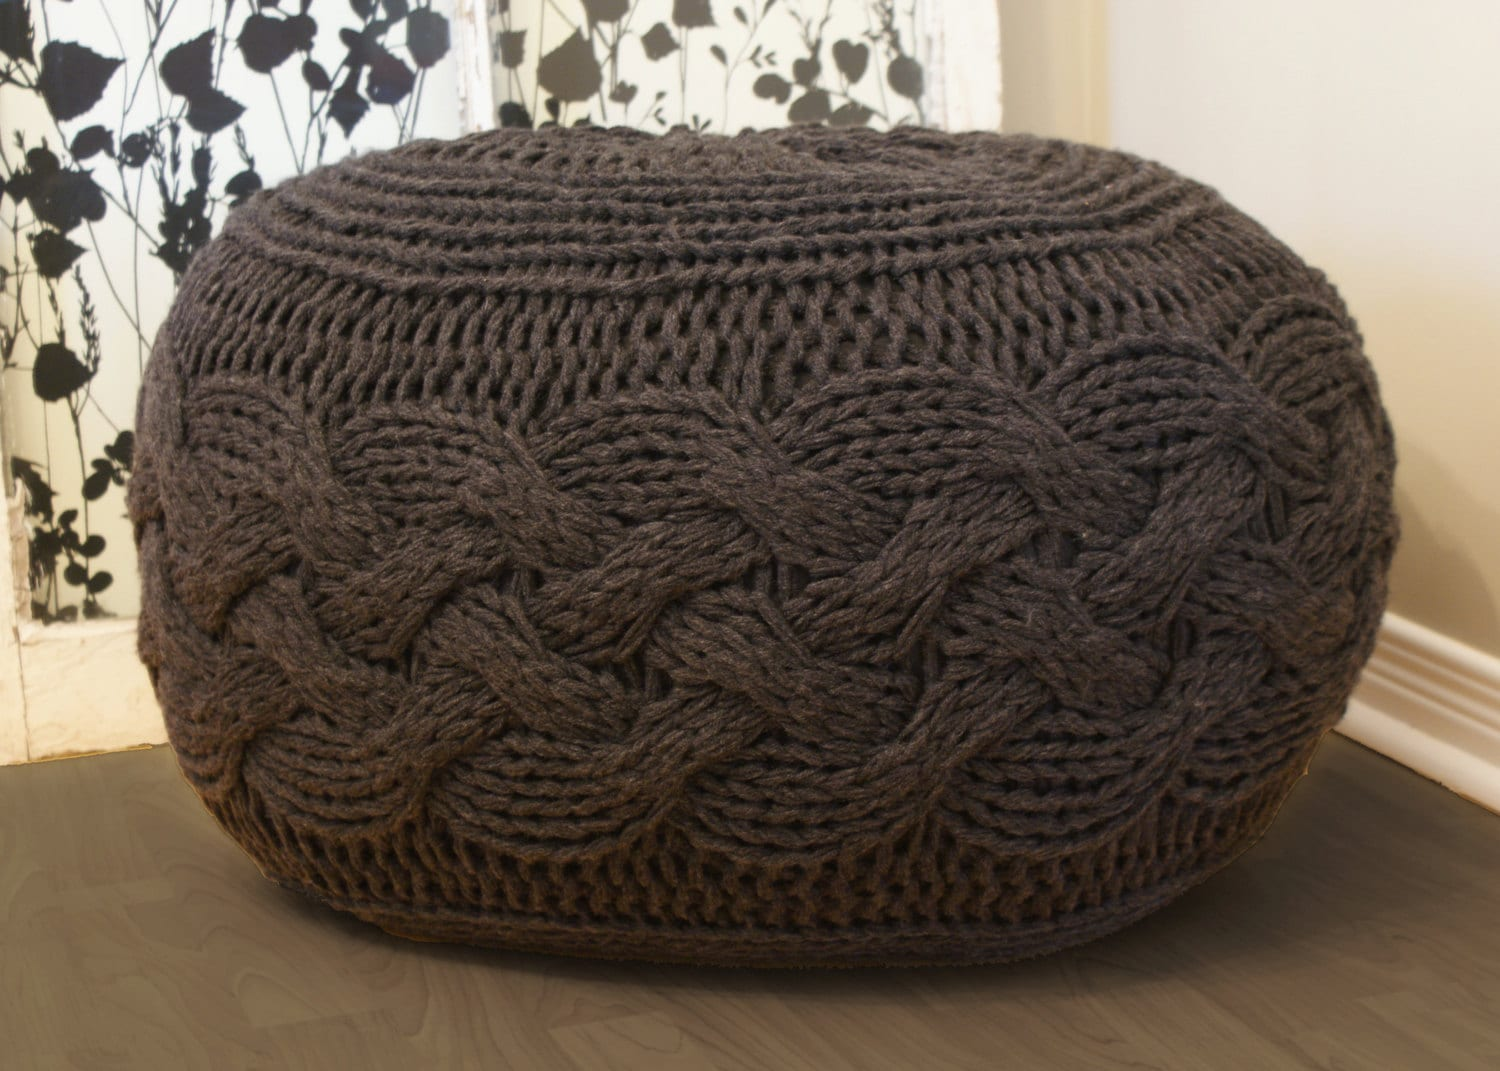 Knitted Ribbing Patterns : DIY Knitting PATTERN Pouffe / Footstool / Ottoman Super